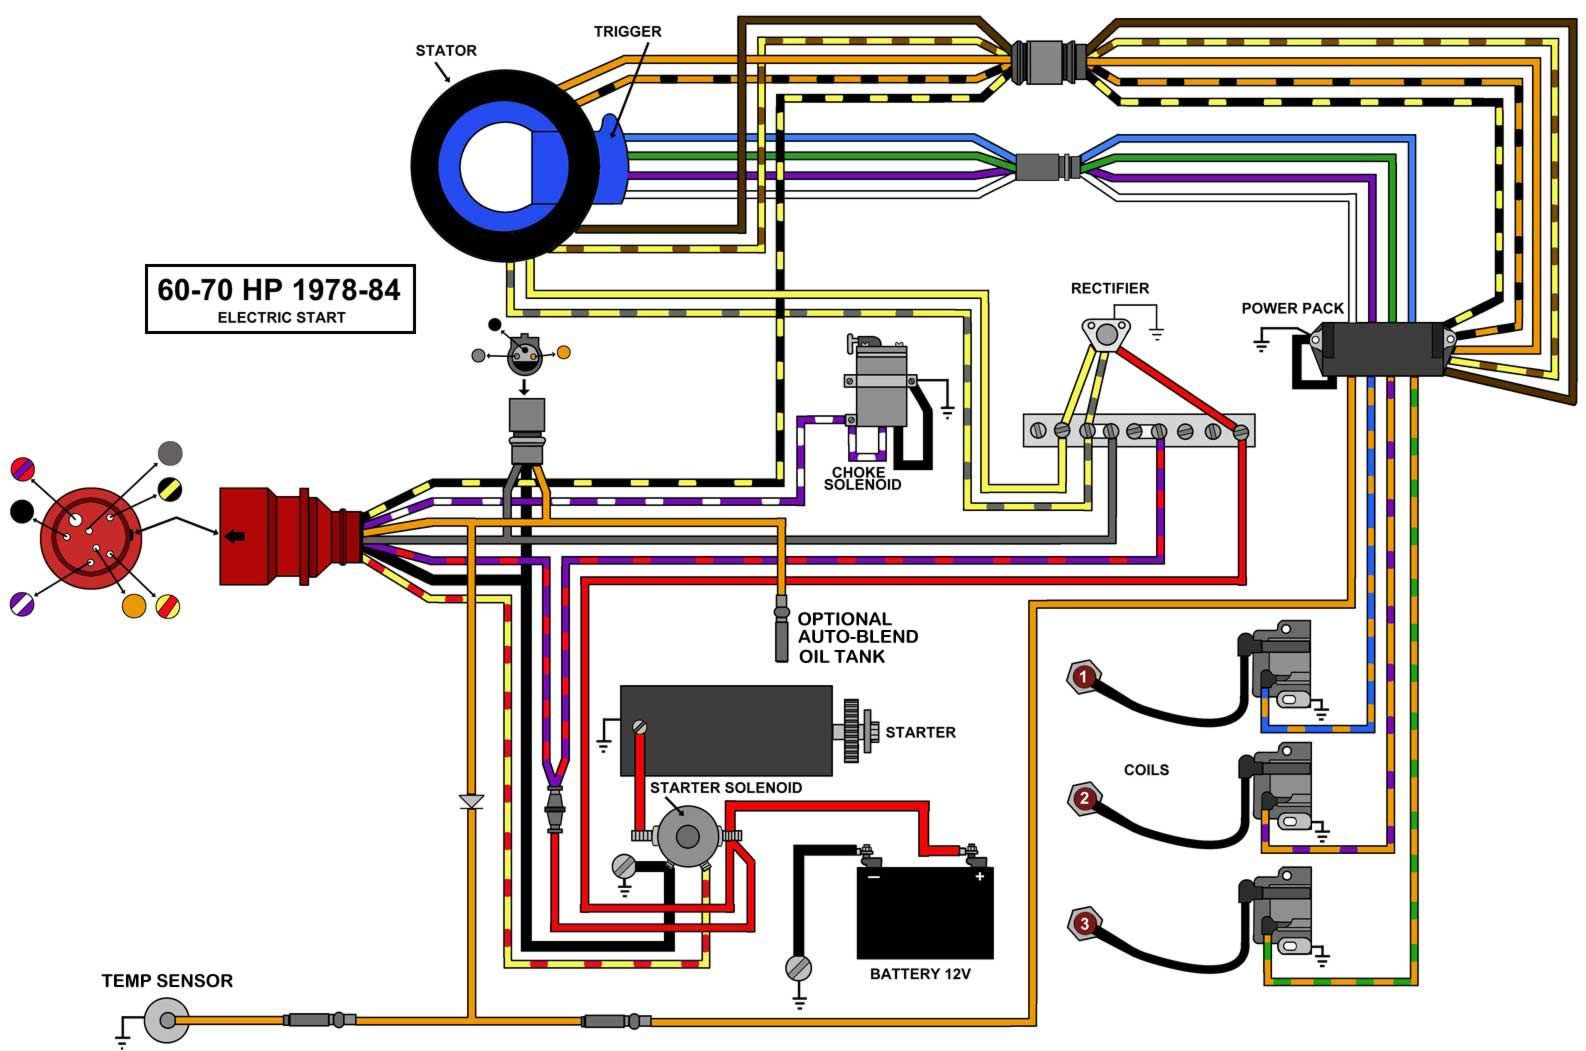 Johnson Tach Wiring Diagram Online Manuual Of Pro Tachometer Image Result For 70 Hp 1988 To Etc Rh Pinterest Com